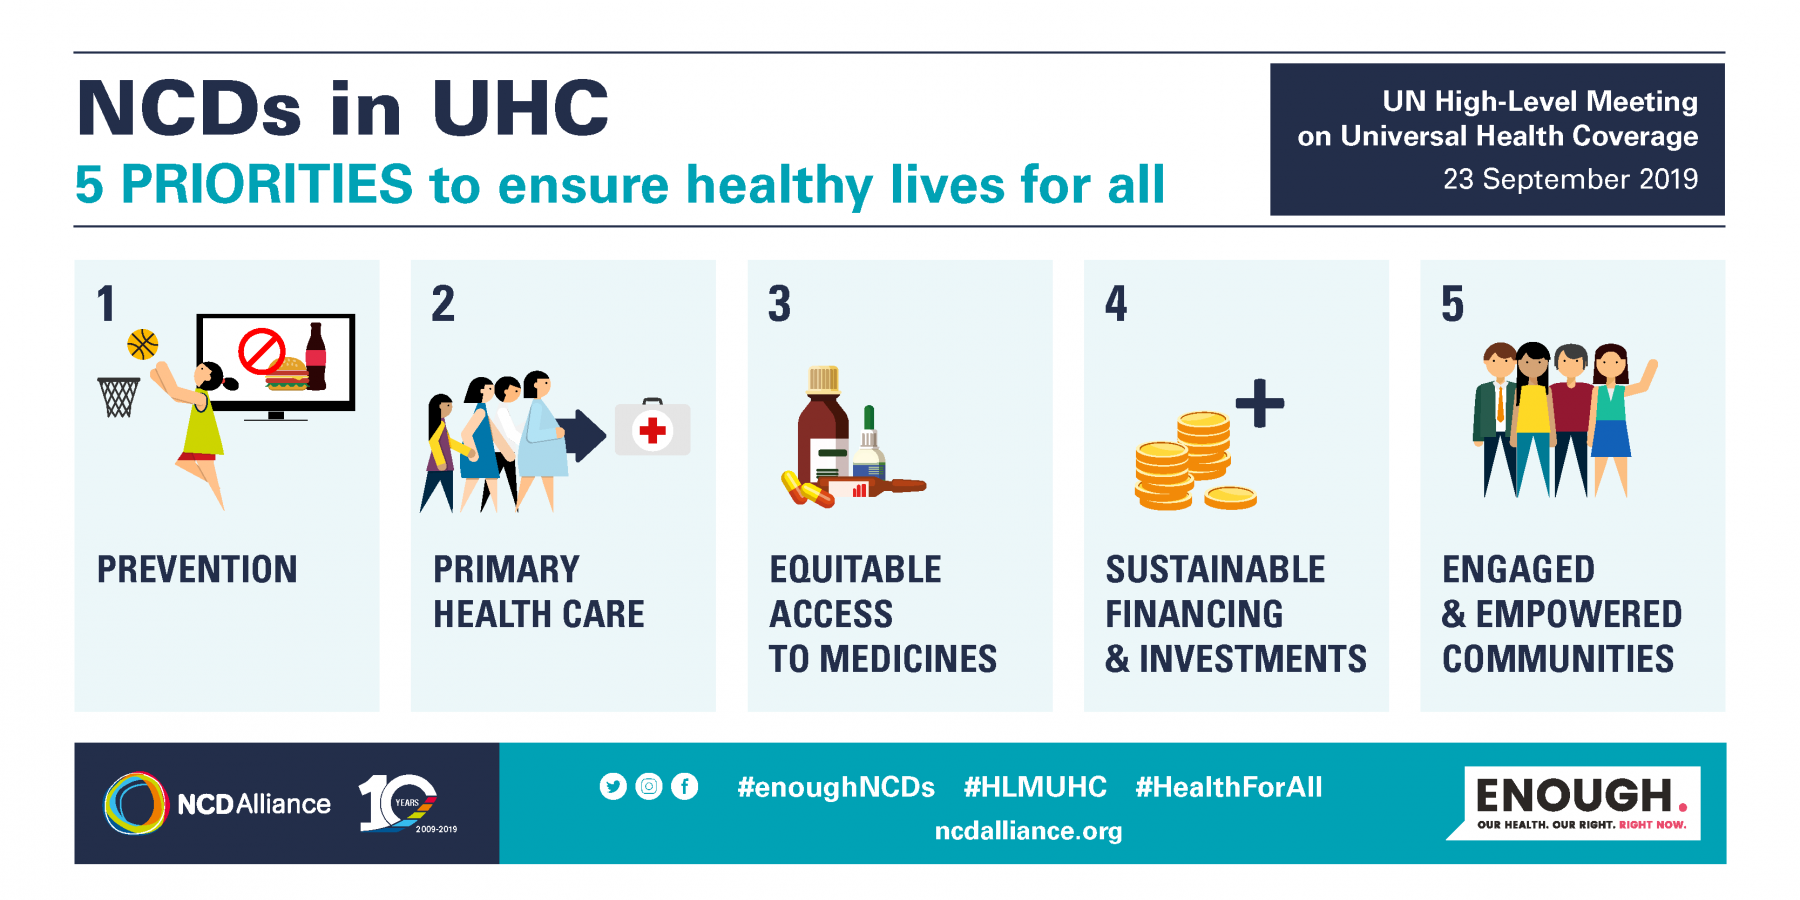 Priorities for HLM on UHC 2019